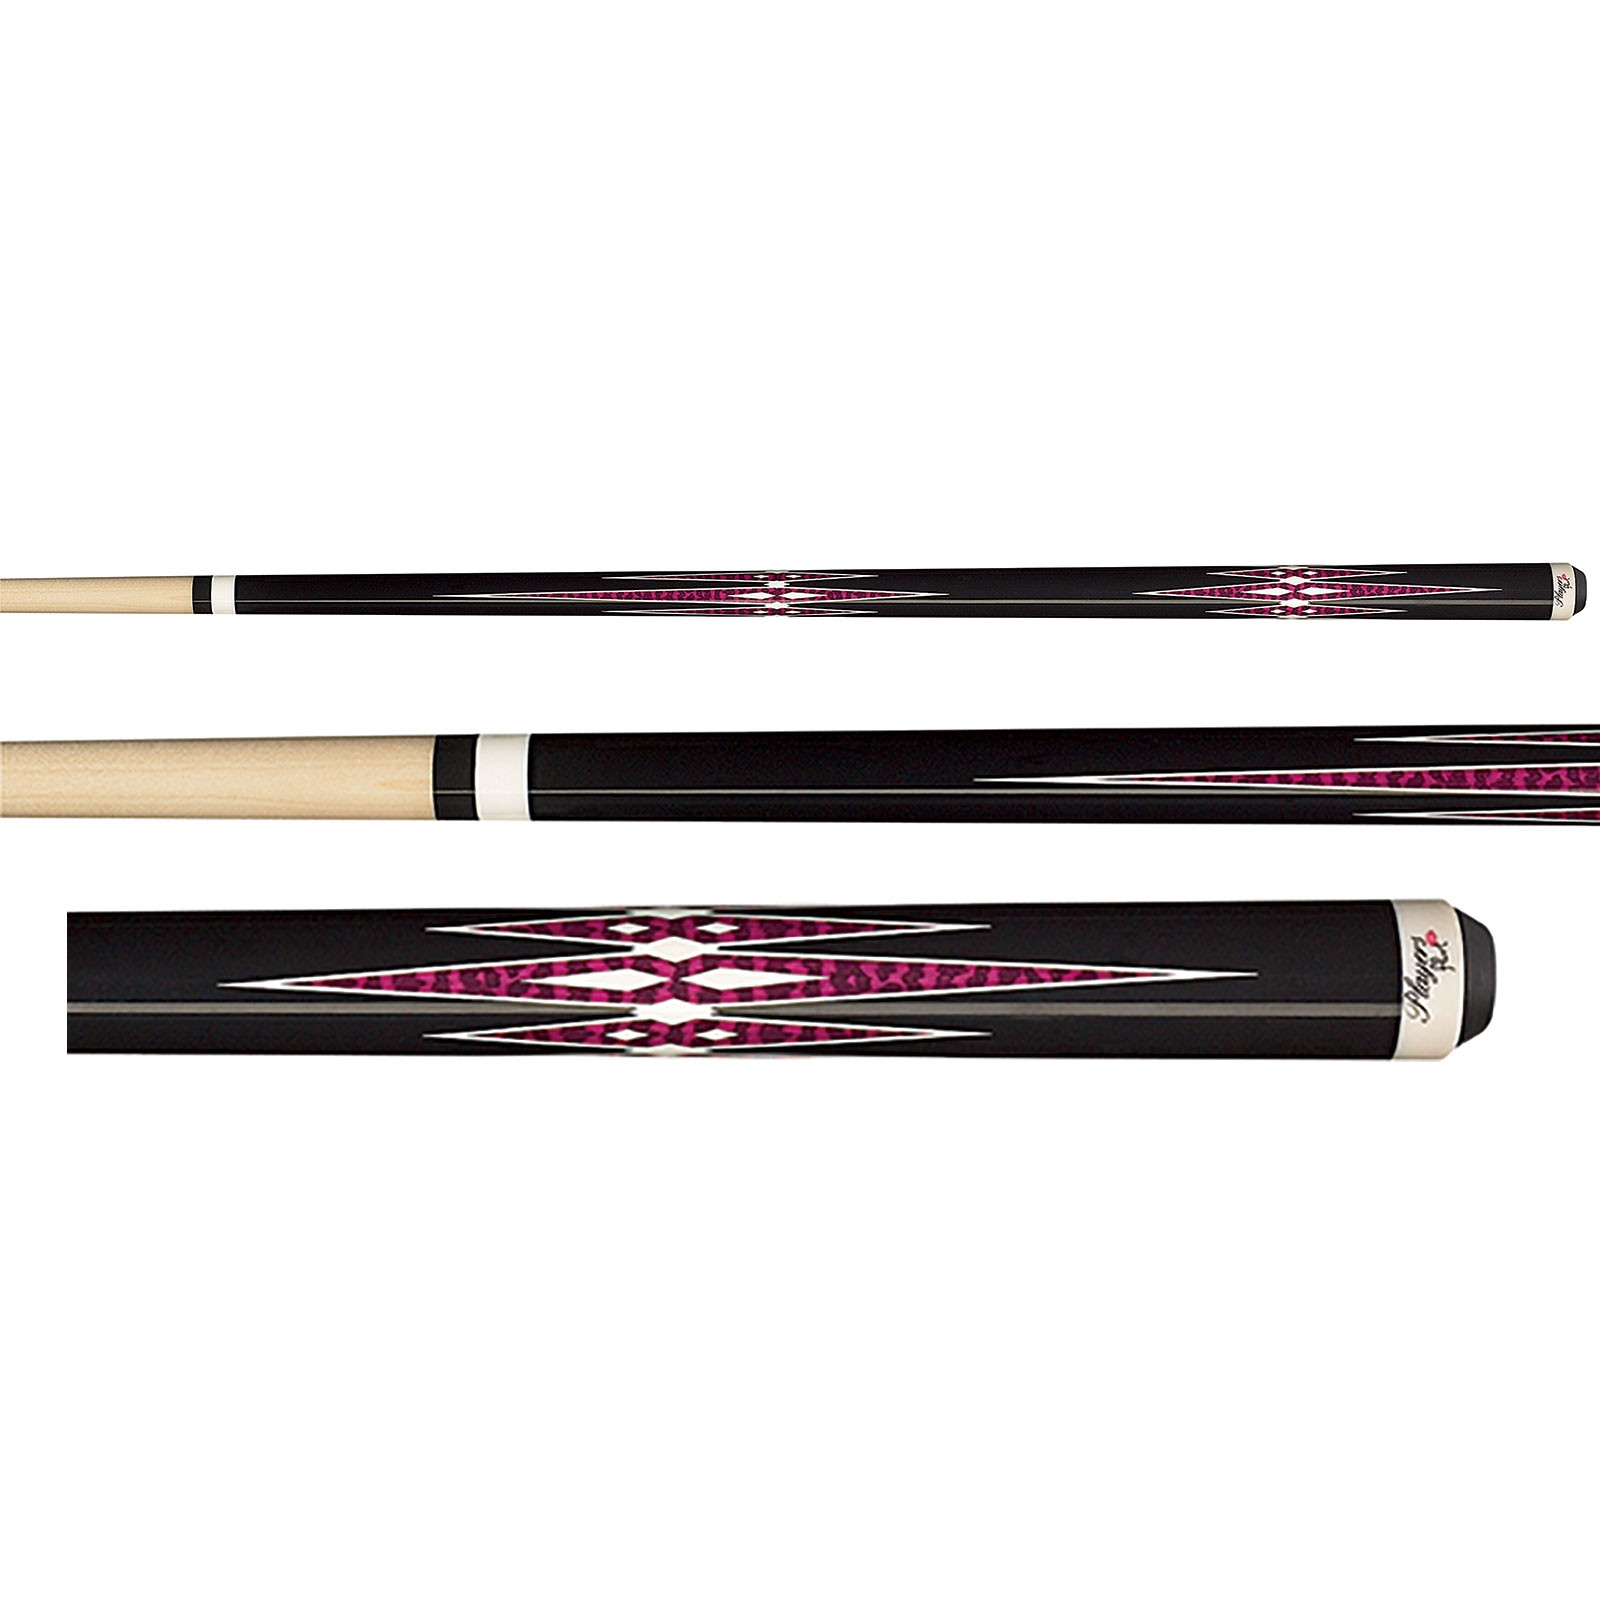 Players F-2600 Flirt Barely Legal Pool Cue Stick